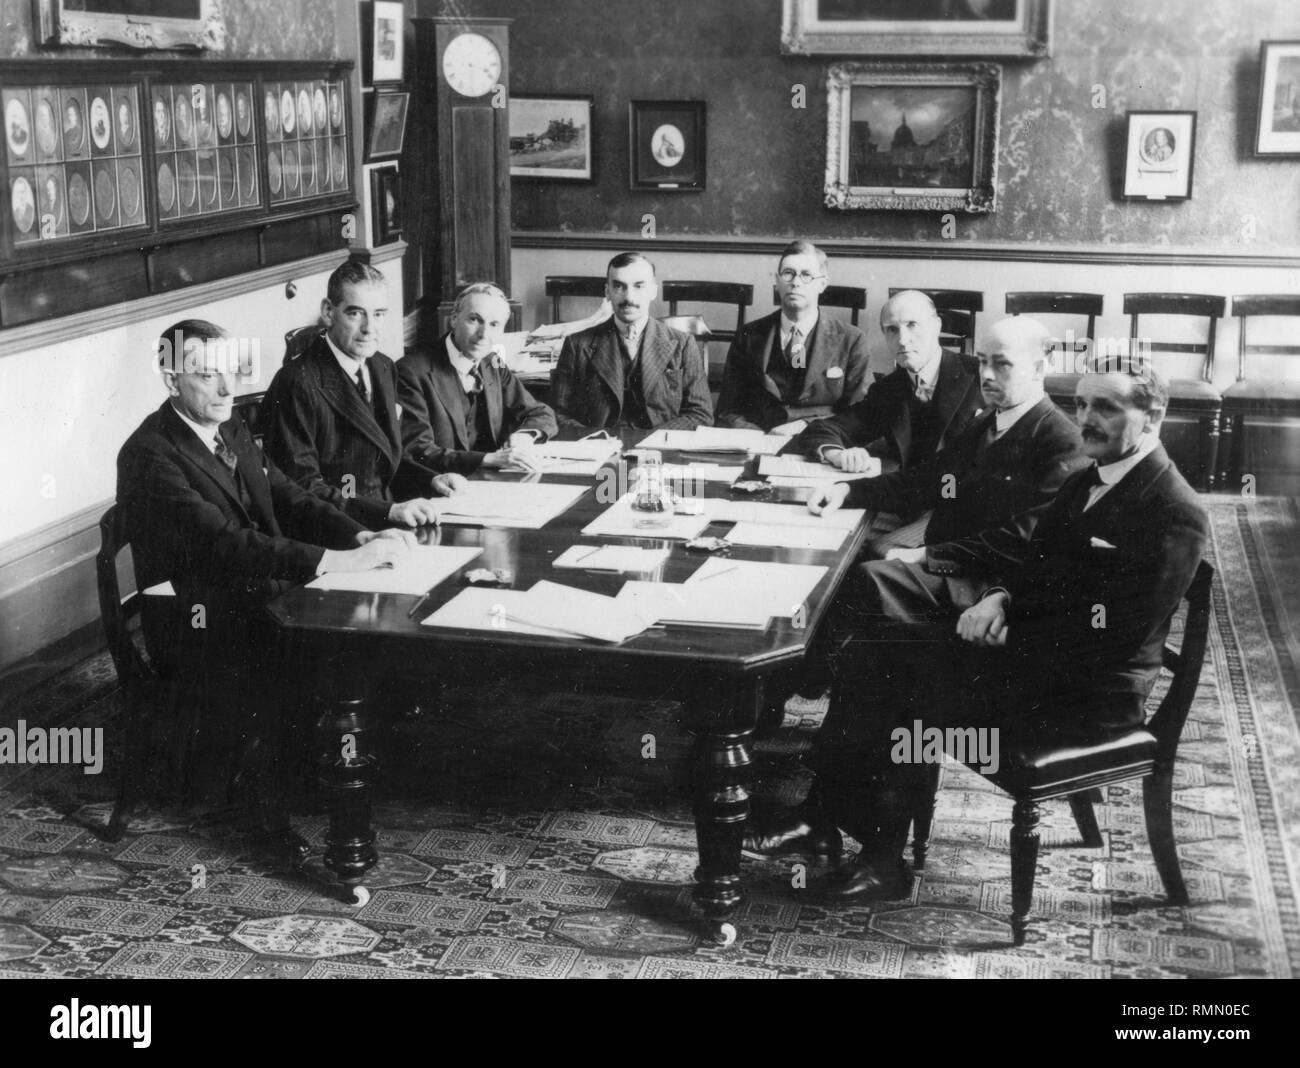 With the 'coming of age' of television as a public service - its 21st anniversary is being celebrated with a dinner at the Dorchester Hotel, London. The members of the Selsdon Committee, which was appointed by the Government in 1934 and was responsible for starting the world's first public television service. (L-R) Sir John Cadman, Lord Selsdon, F.W. Phillips, J. Varley Roberts, O.F. Brown, Sir Charles Carpendale, Noel Ashbridge and Colonel A.s. Angwin. The committee's report was issued as a Whiet Paper in January 1935.  *NEG CORRUPT, SCANNED FROM CONTACT - Stock Image